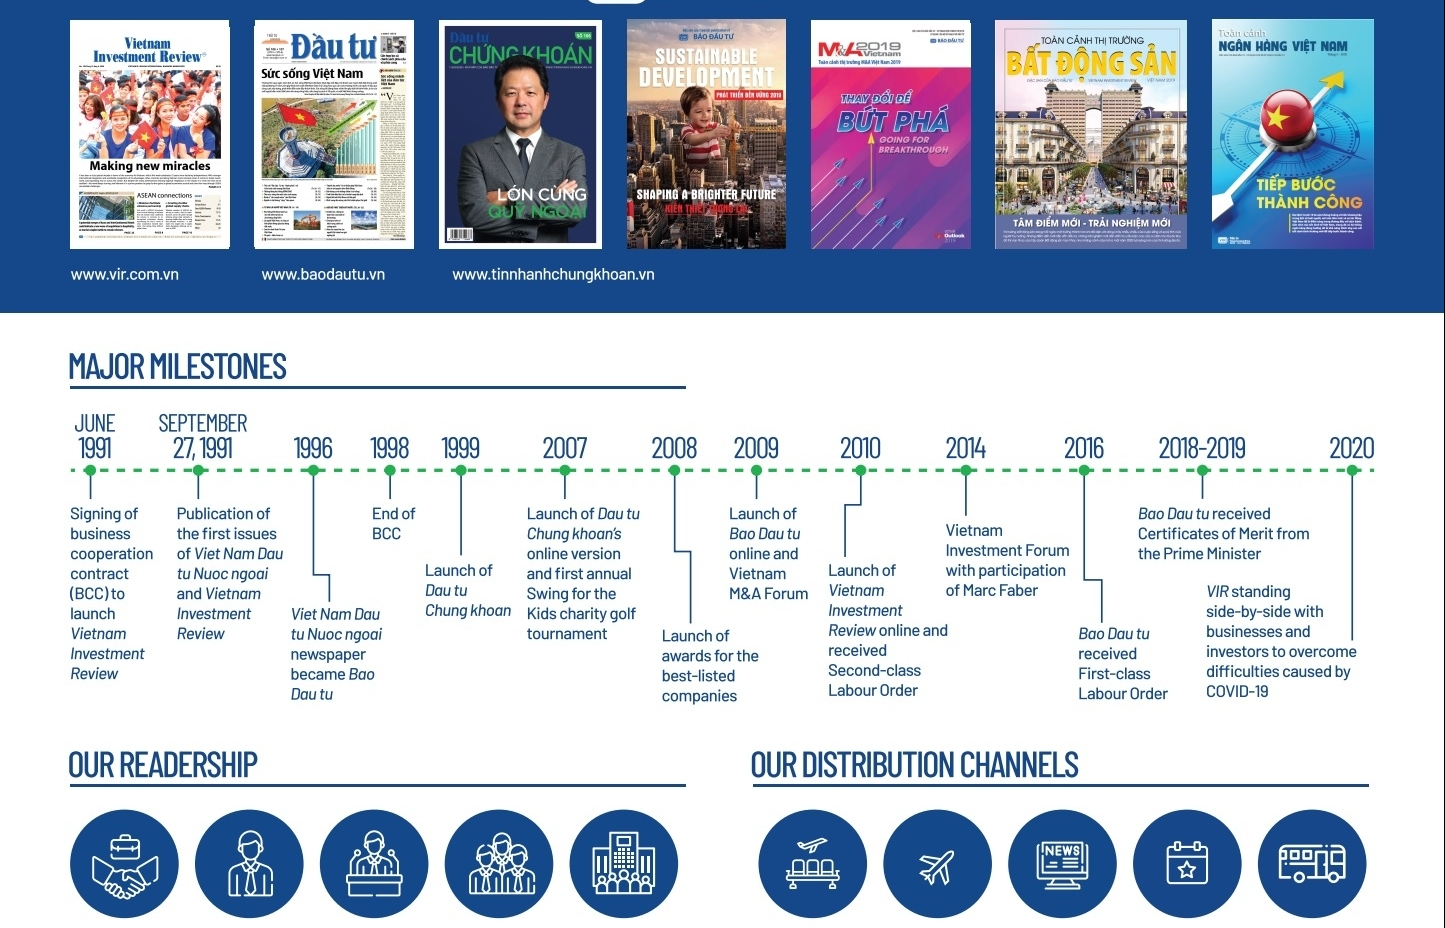 Vietnam Investment Review 29 years of companionship with Investors and Businesses (Infographics)